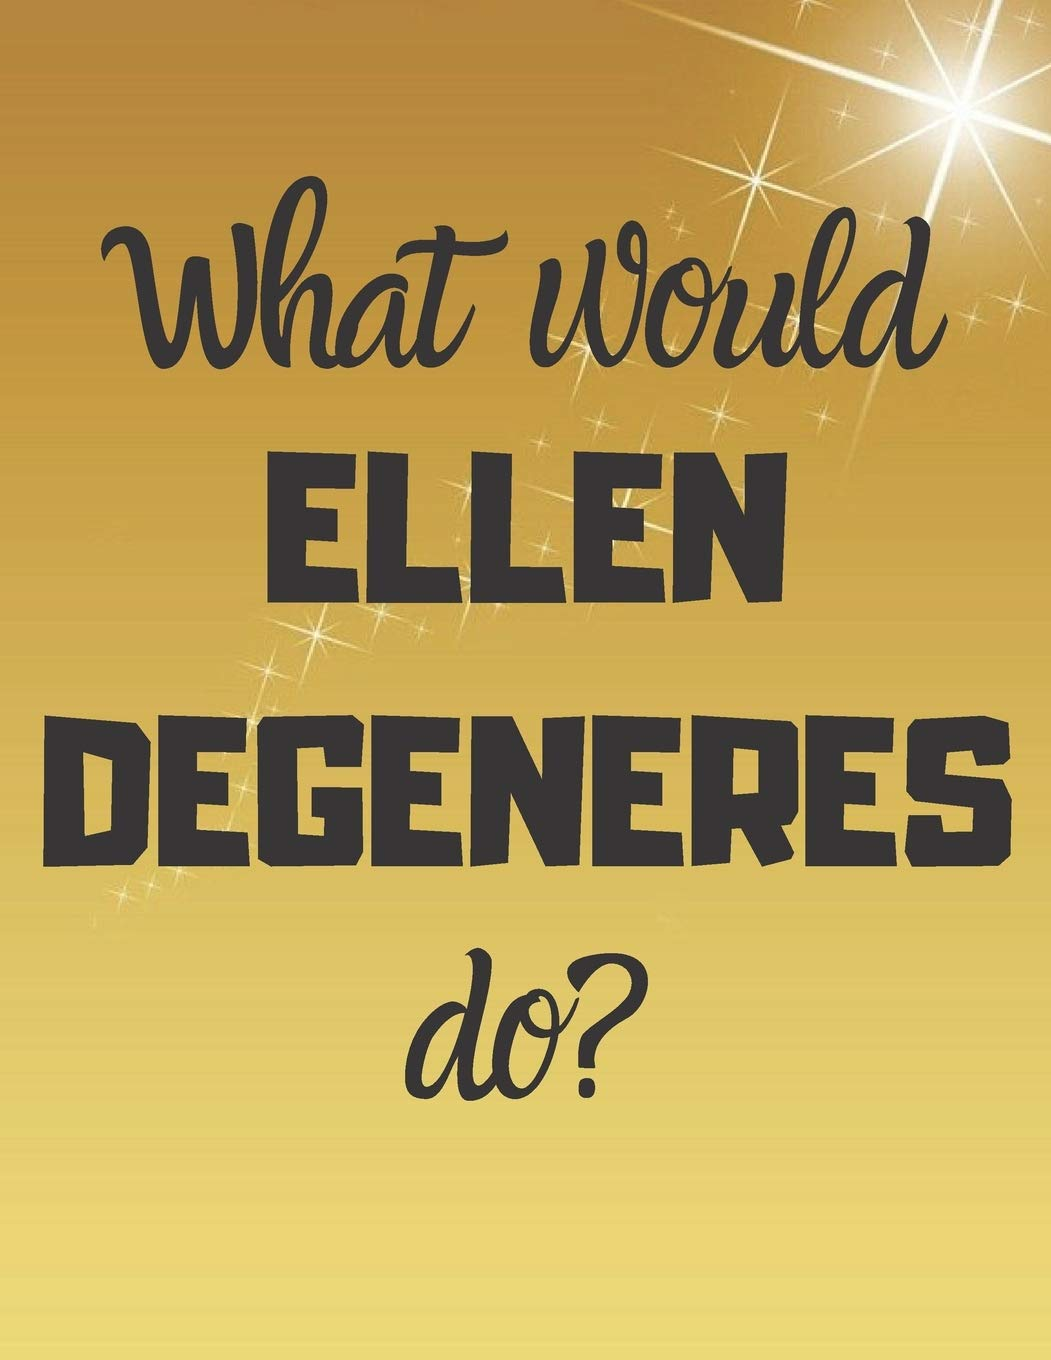 What Would ELLEN DEGENERES Dp   Notebook Notepad Diary Journal Perfect Gift For All Fans Of Ellen Degeneres.   80 Black Lined Pages   A4   8.5x11 Inches